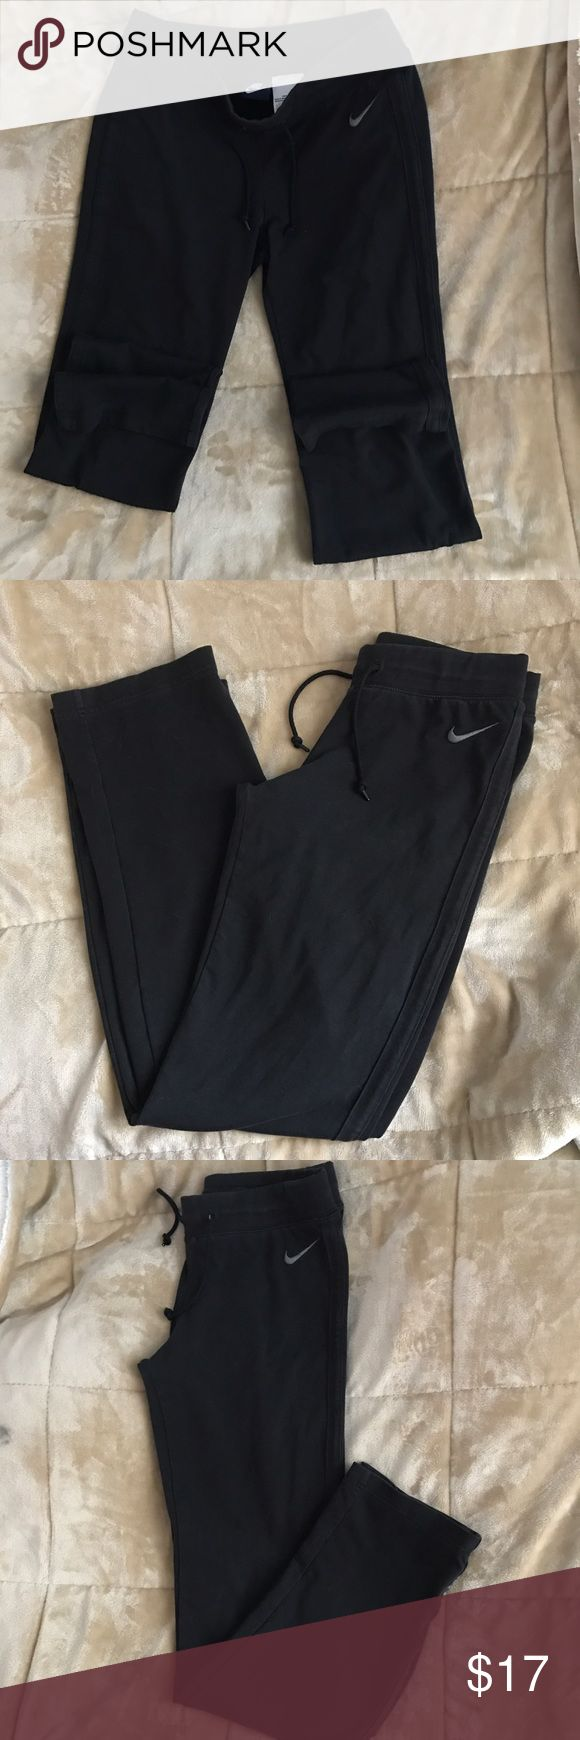 ❣️NIKE:| Women's Nike Jersey Pants. Size Small. BRAND: NIKE. Size: Small. Minimal signs of normal wear. No critical damage. Very Good condition. *Pictures are not filtered.                               Product Details These women's Nike pants provide laid-back style and a comfortable fit. Product Features Soft jersey construction Relaxed fit Drawstring elastic waistband Fabric & Care Cotton/polyester/spandex Machine wash Imported Nike Pants Track Pants & Joggers